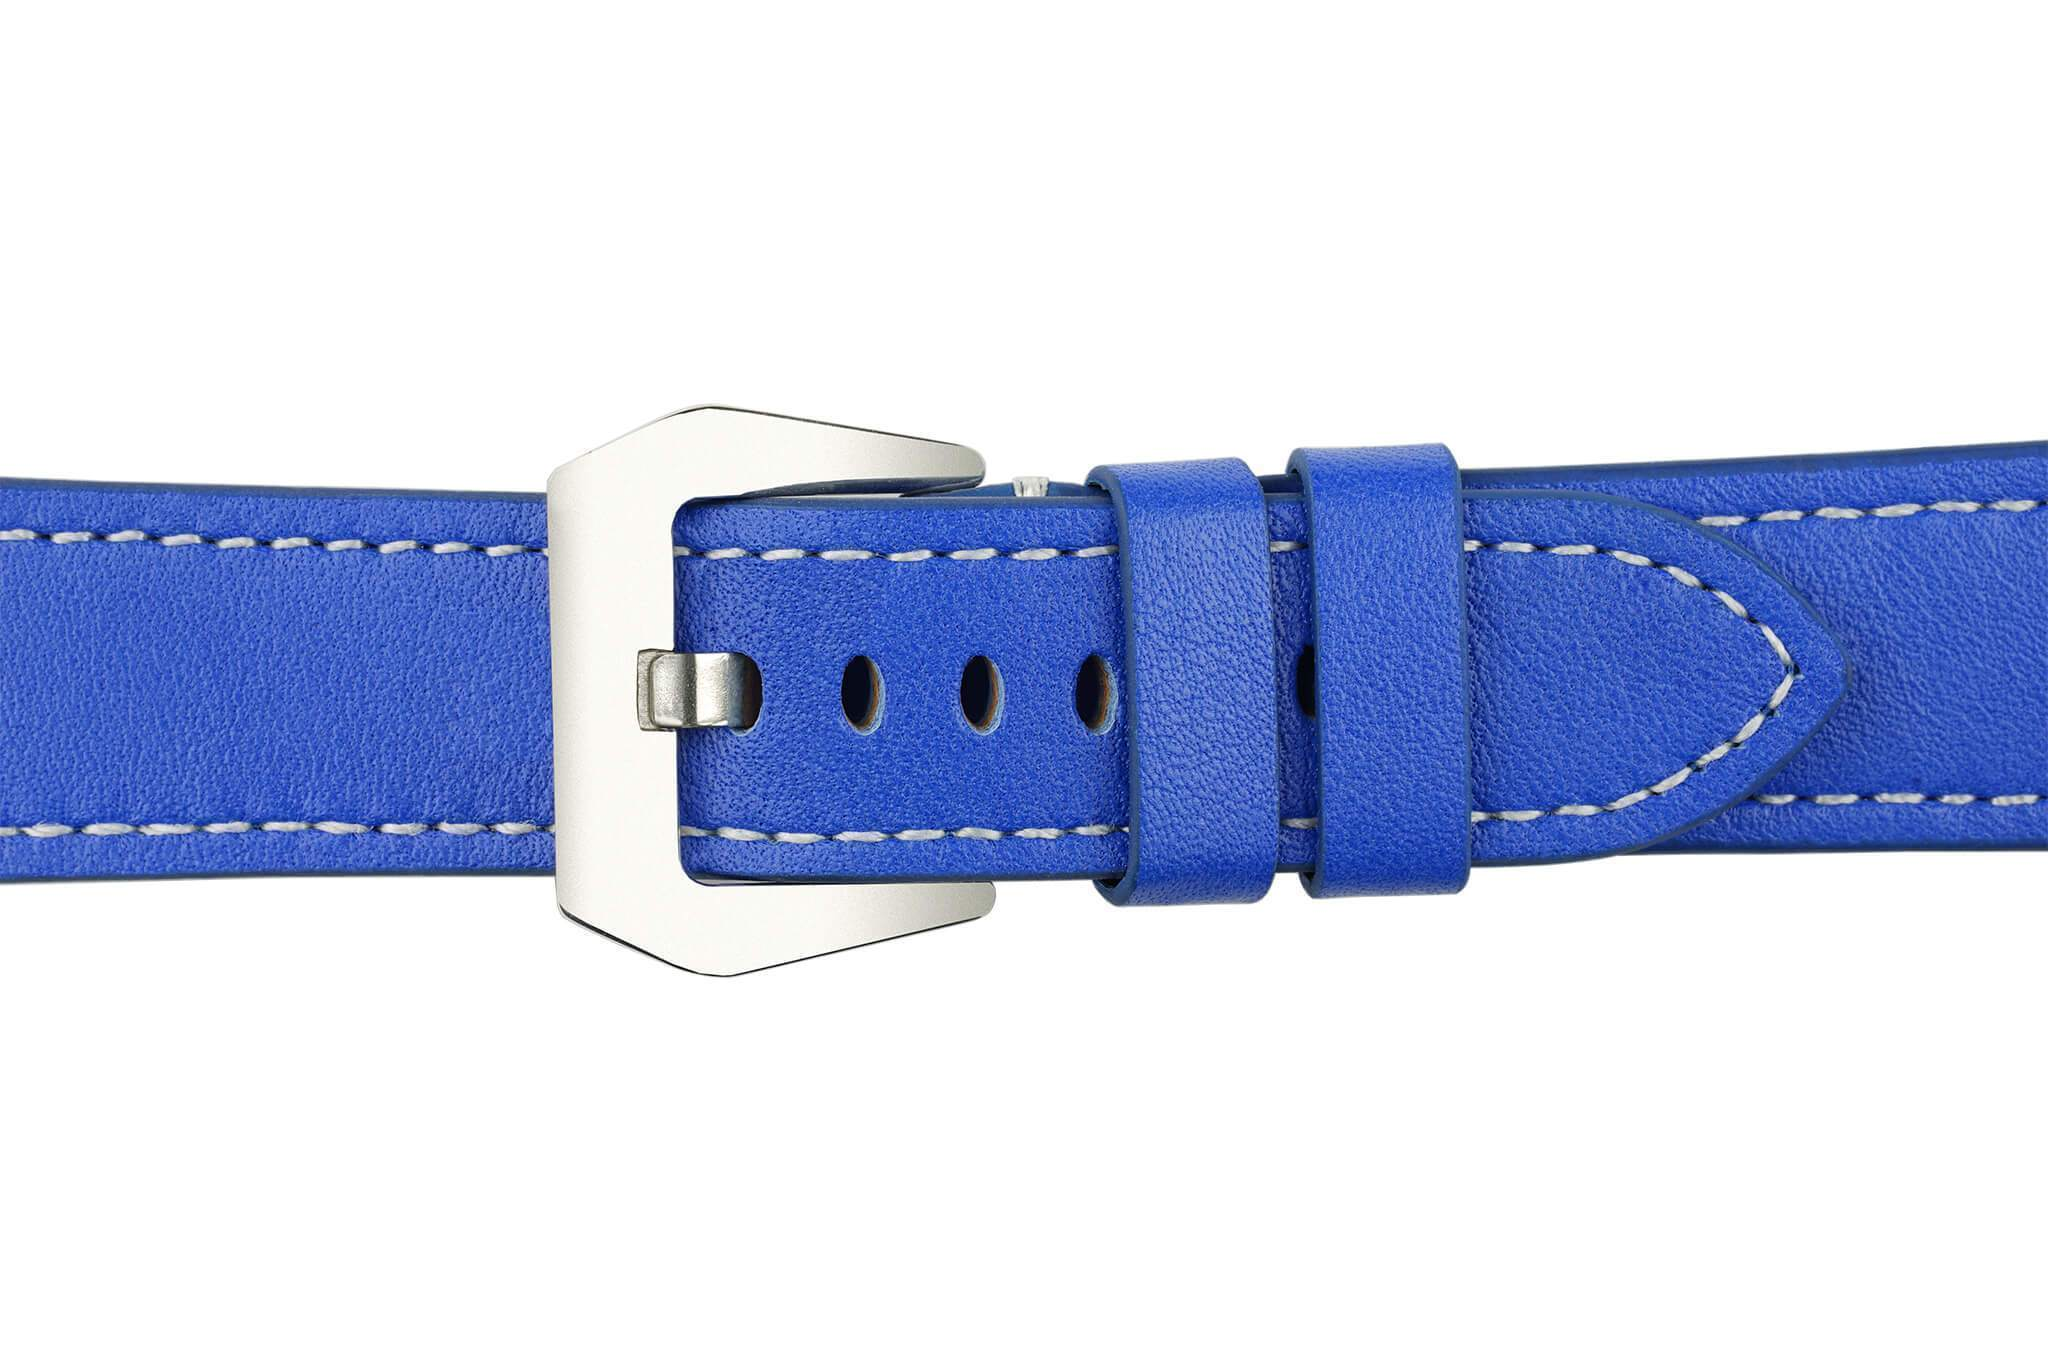 Watch Straps - 22mm Royal Blue Leather Watch Strap